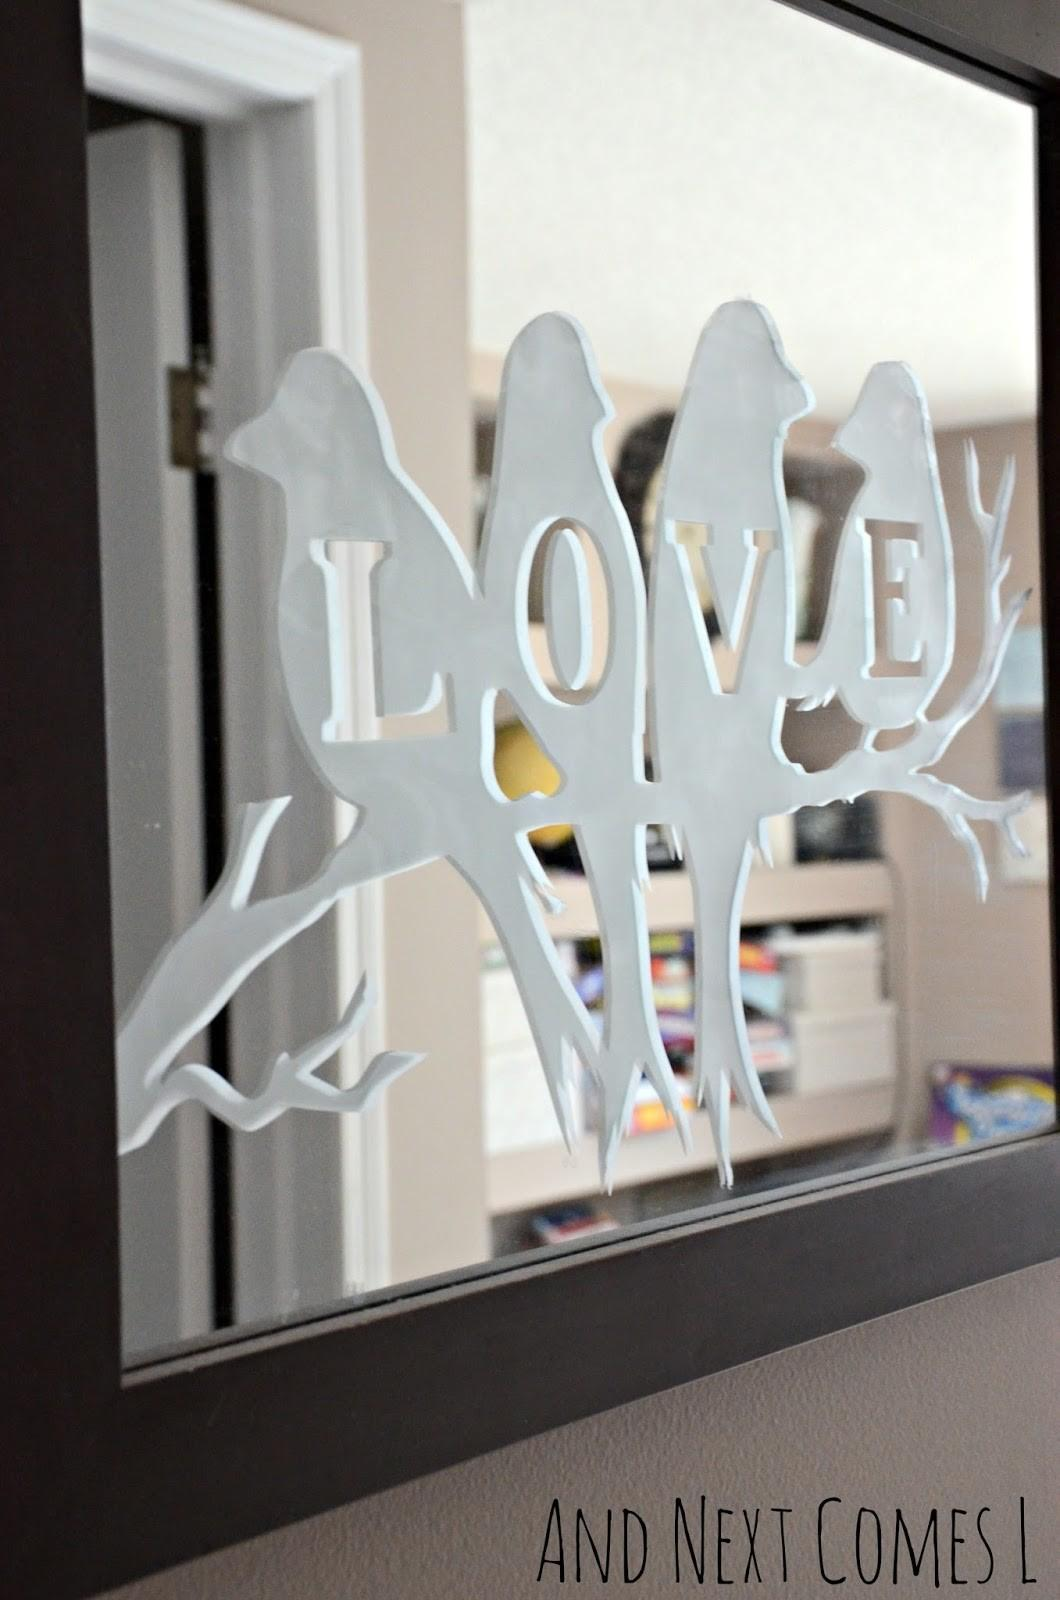 Lovebirds Etched Mirror Next Comes